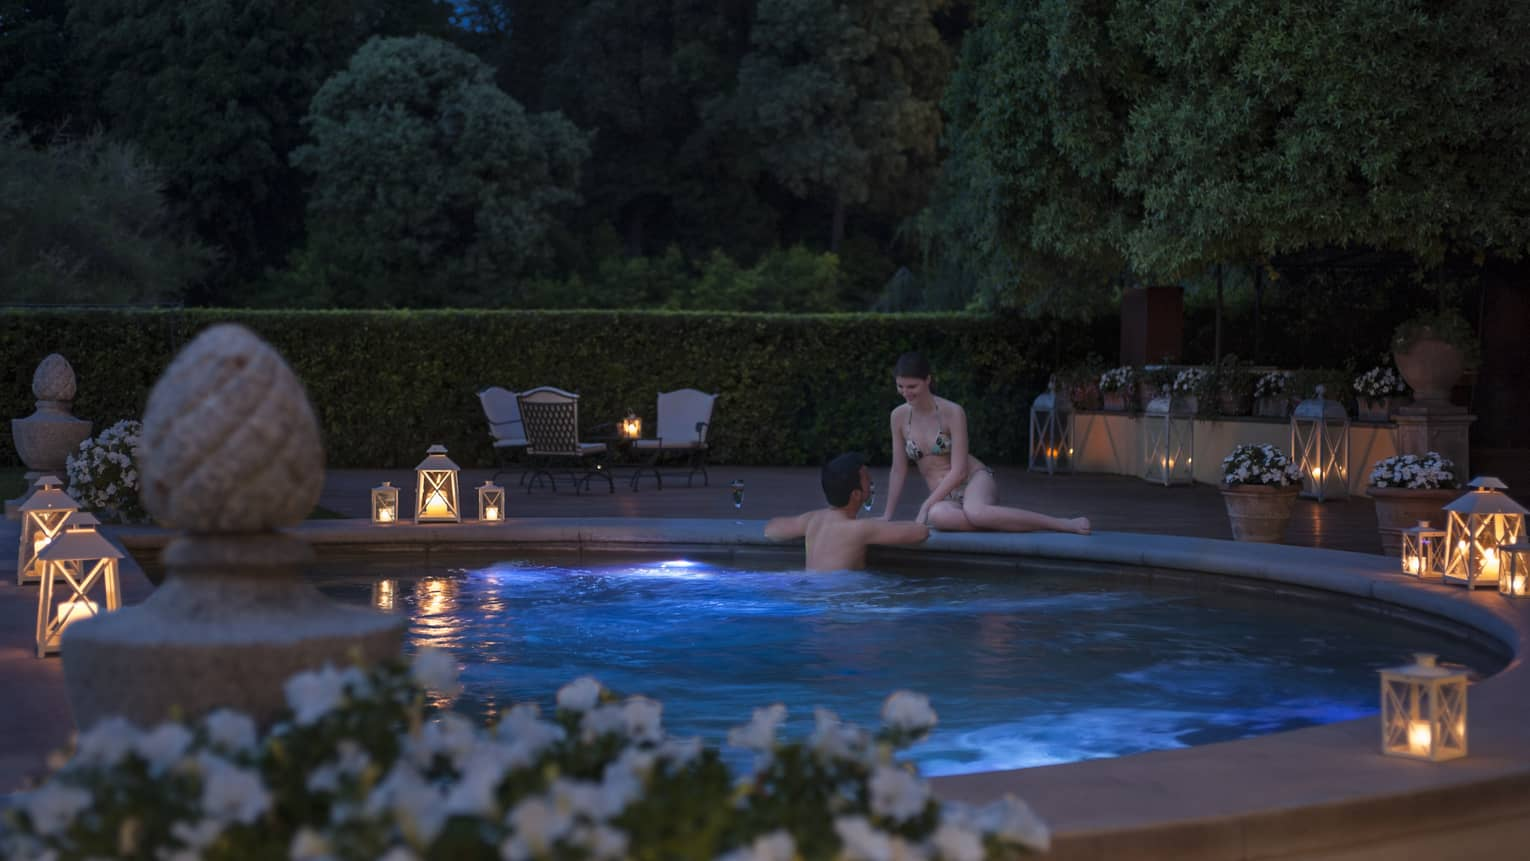 Woman sits on edge of outdoor whirlpool as man wades in water, glowing lanterns on deck